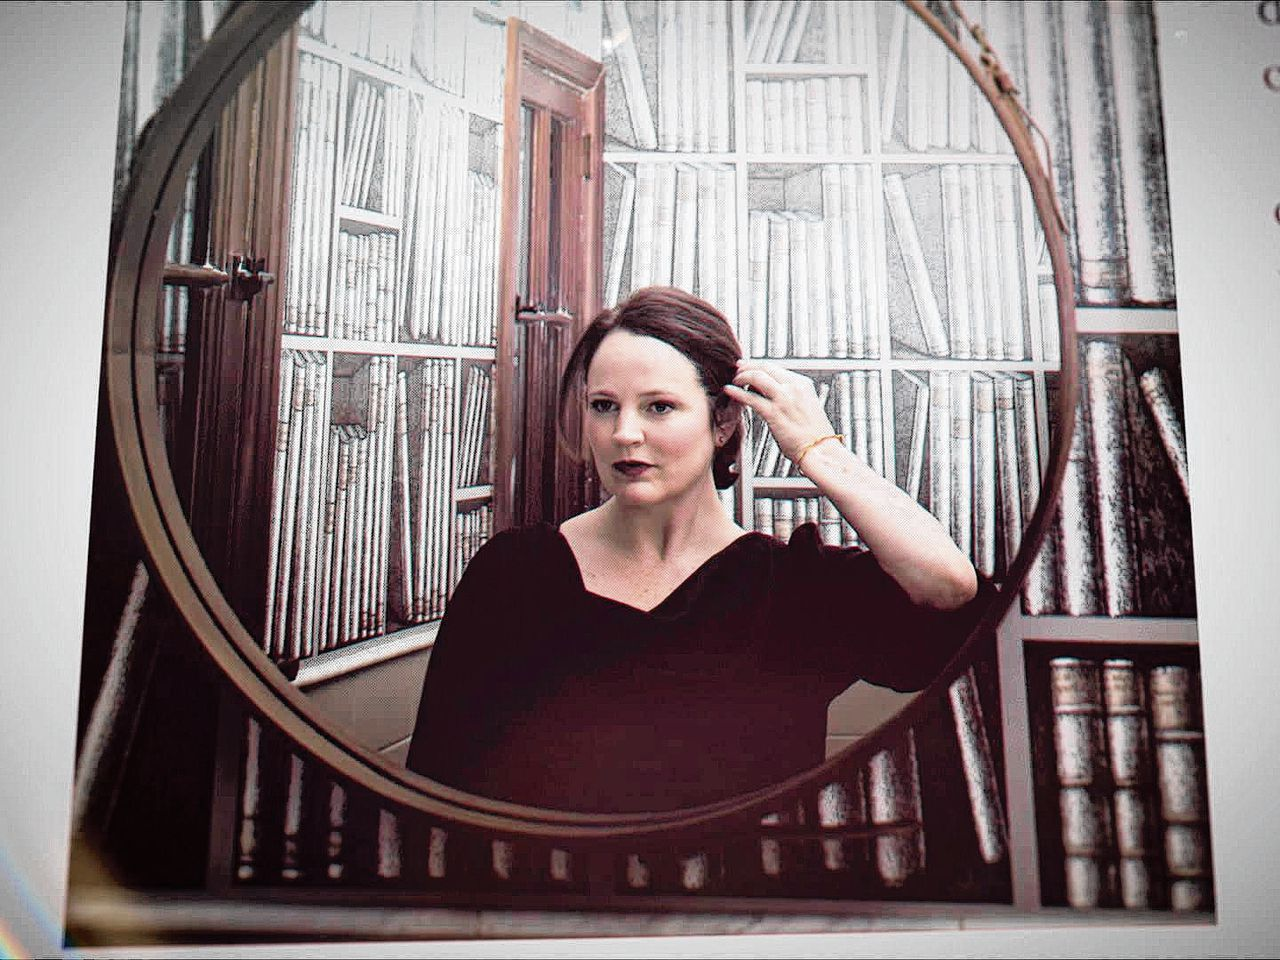 Auteur Michelle McNamara (1970-2016) schreef onder meer I'll Be Gone in the Dark: One Woman's Obsessive Search for the Golden State Killer (2018).